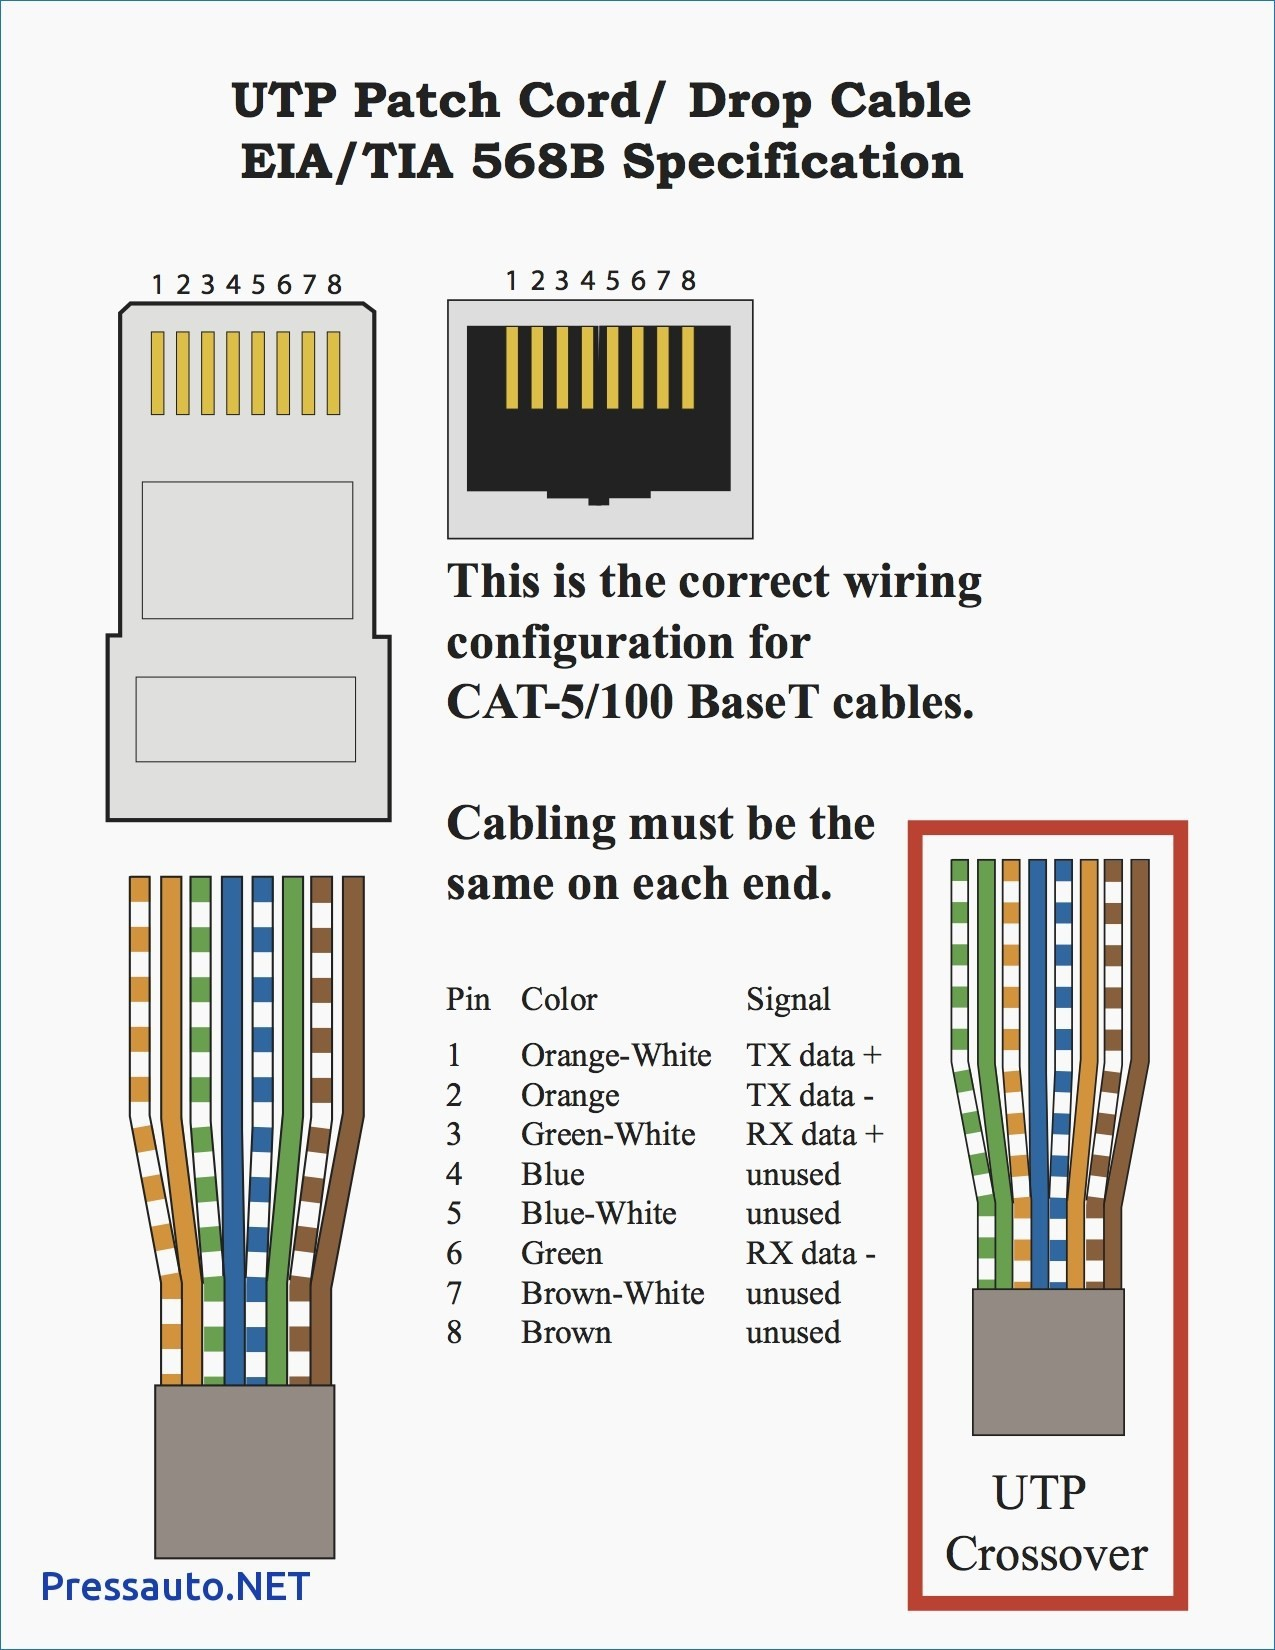 hdmi over cat5 wiring diagram Collection-Cat 6 Wiring Diagram Rj45 Awesome Epic Cat 5 Wiring Diagram B 25 Hdmi Wire Color 12-k